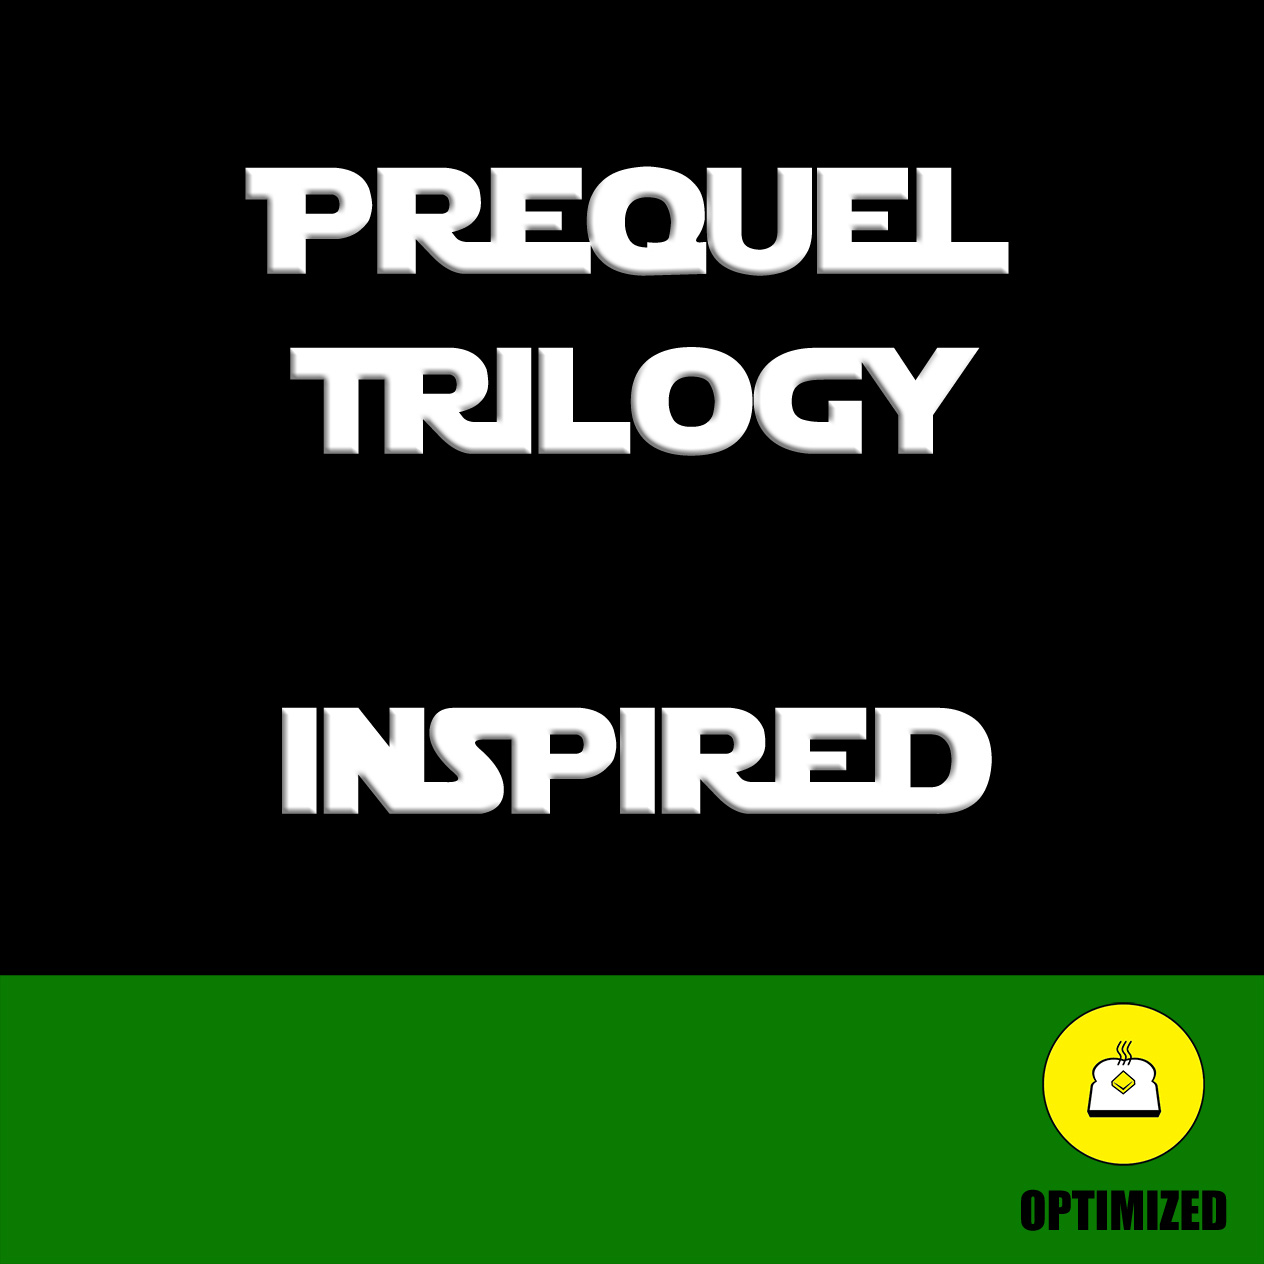 Prequel Trilogy Inspired for Plecter